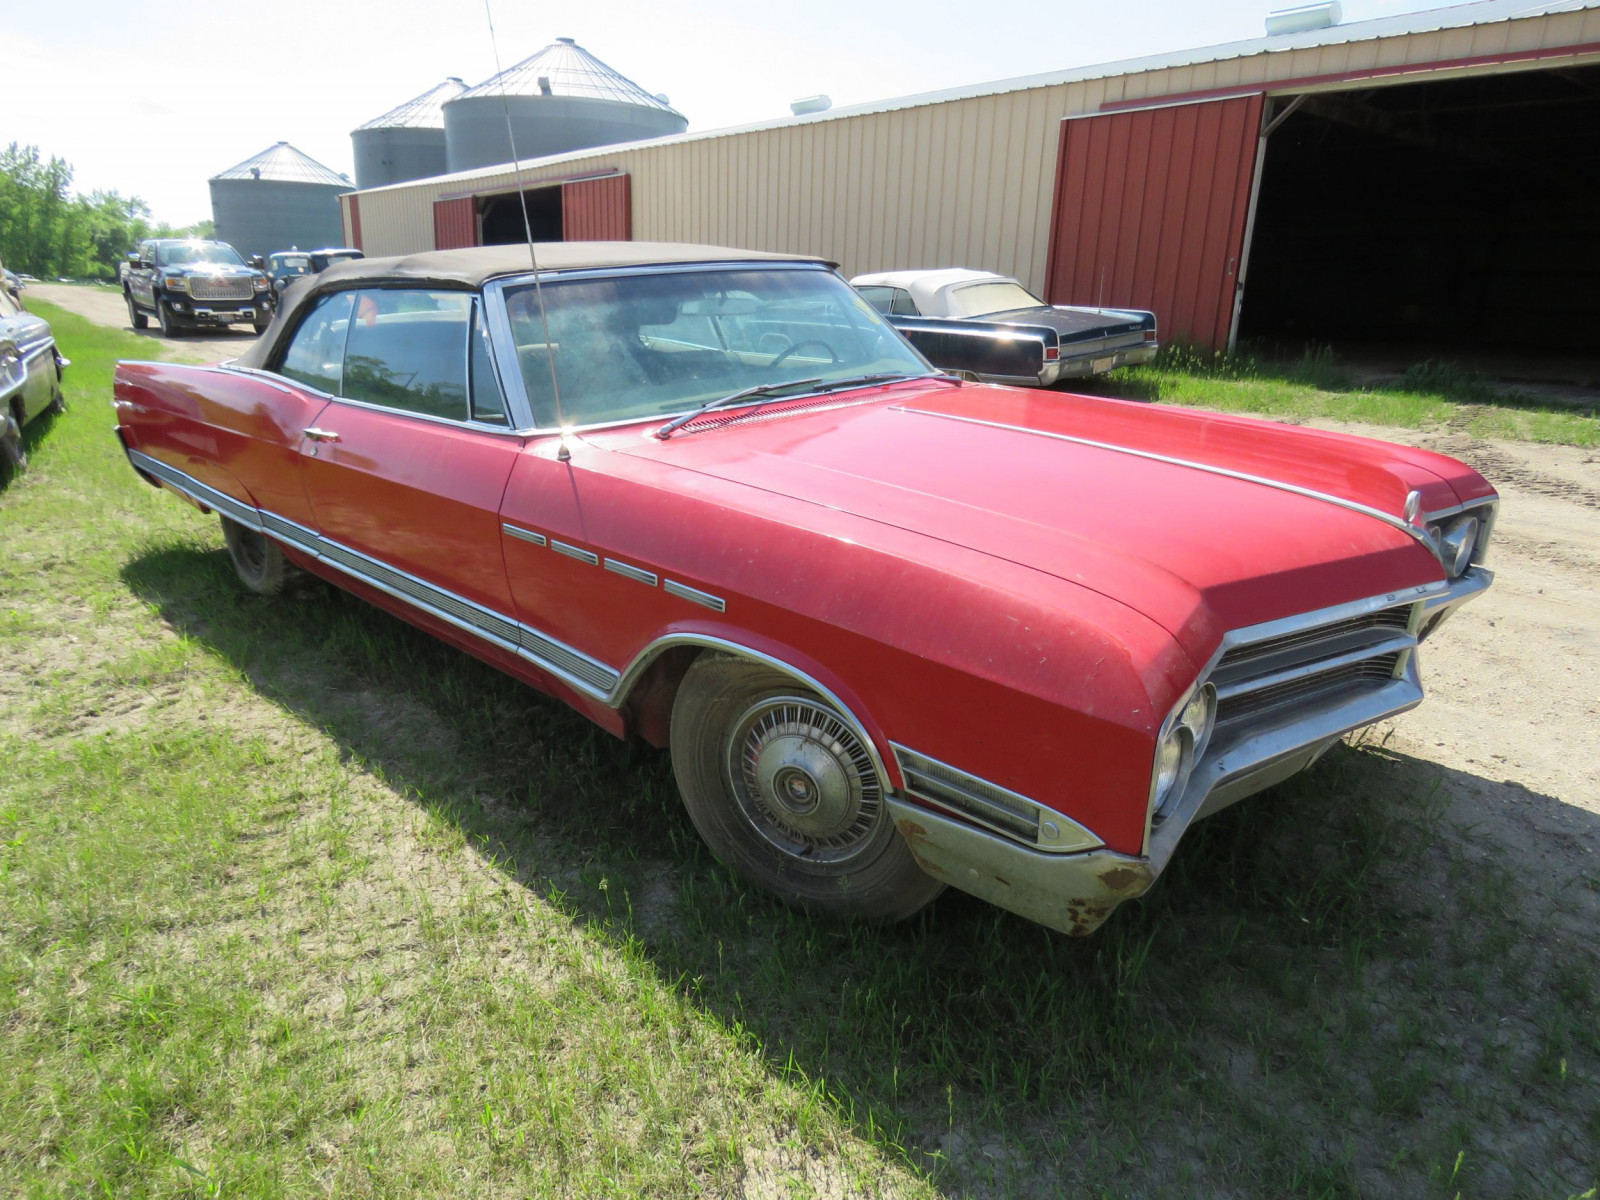 1965 Buick Electra 225 Convertible 484675H286474 - Image 3